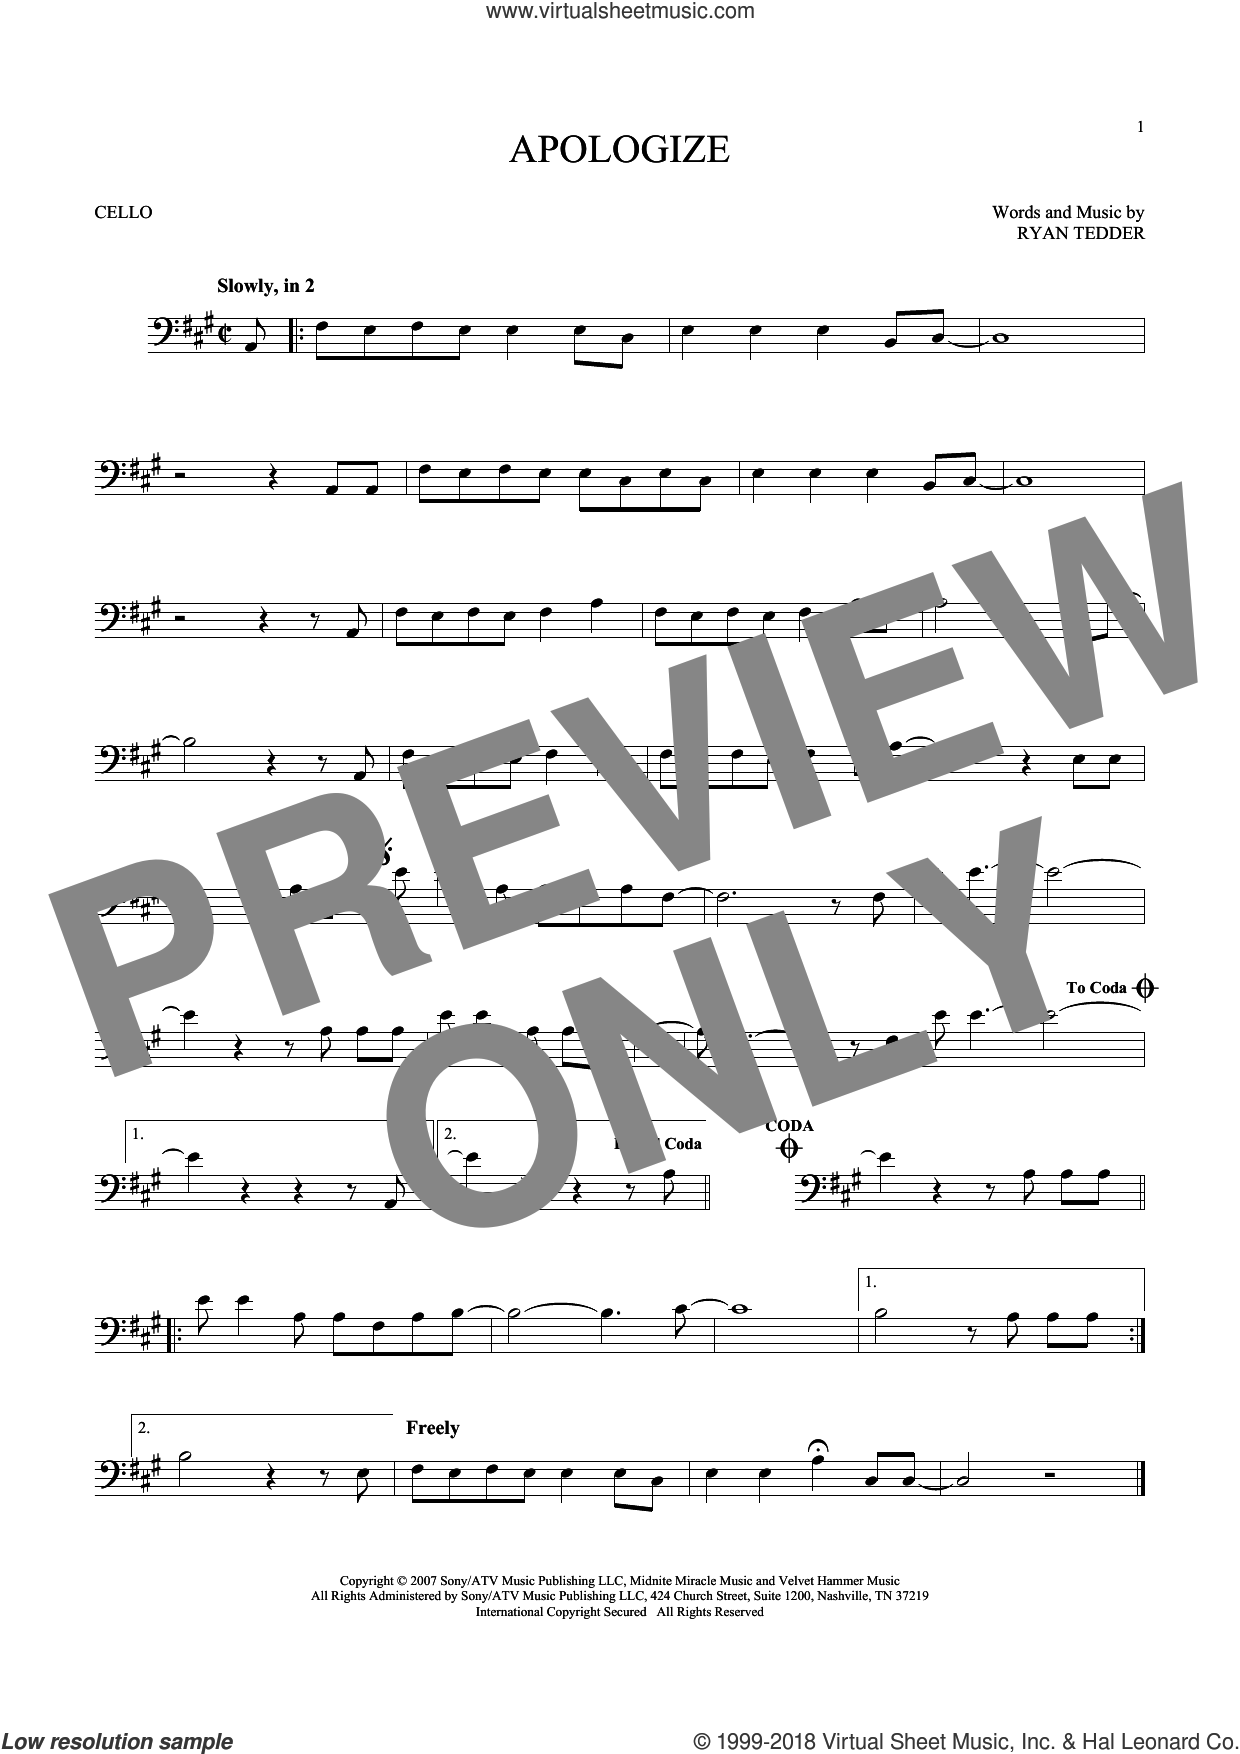 Apologize sheet music for cello solo by Timbaland featuring OneRepublic and Ryan Tedder, intermediate skill level